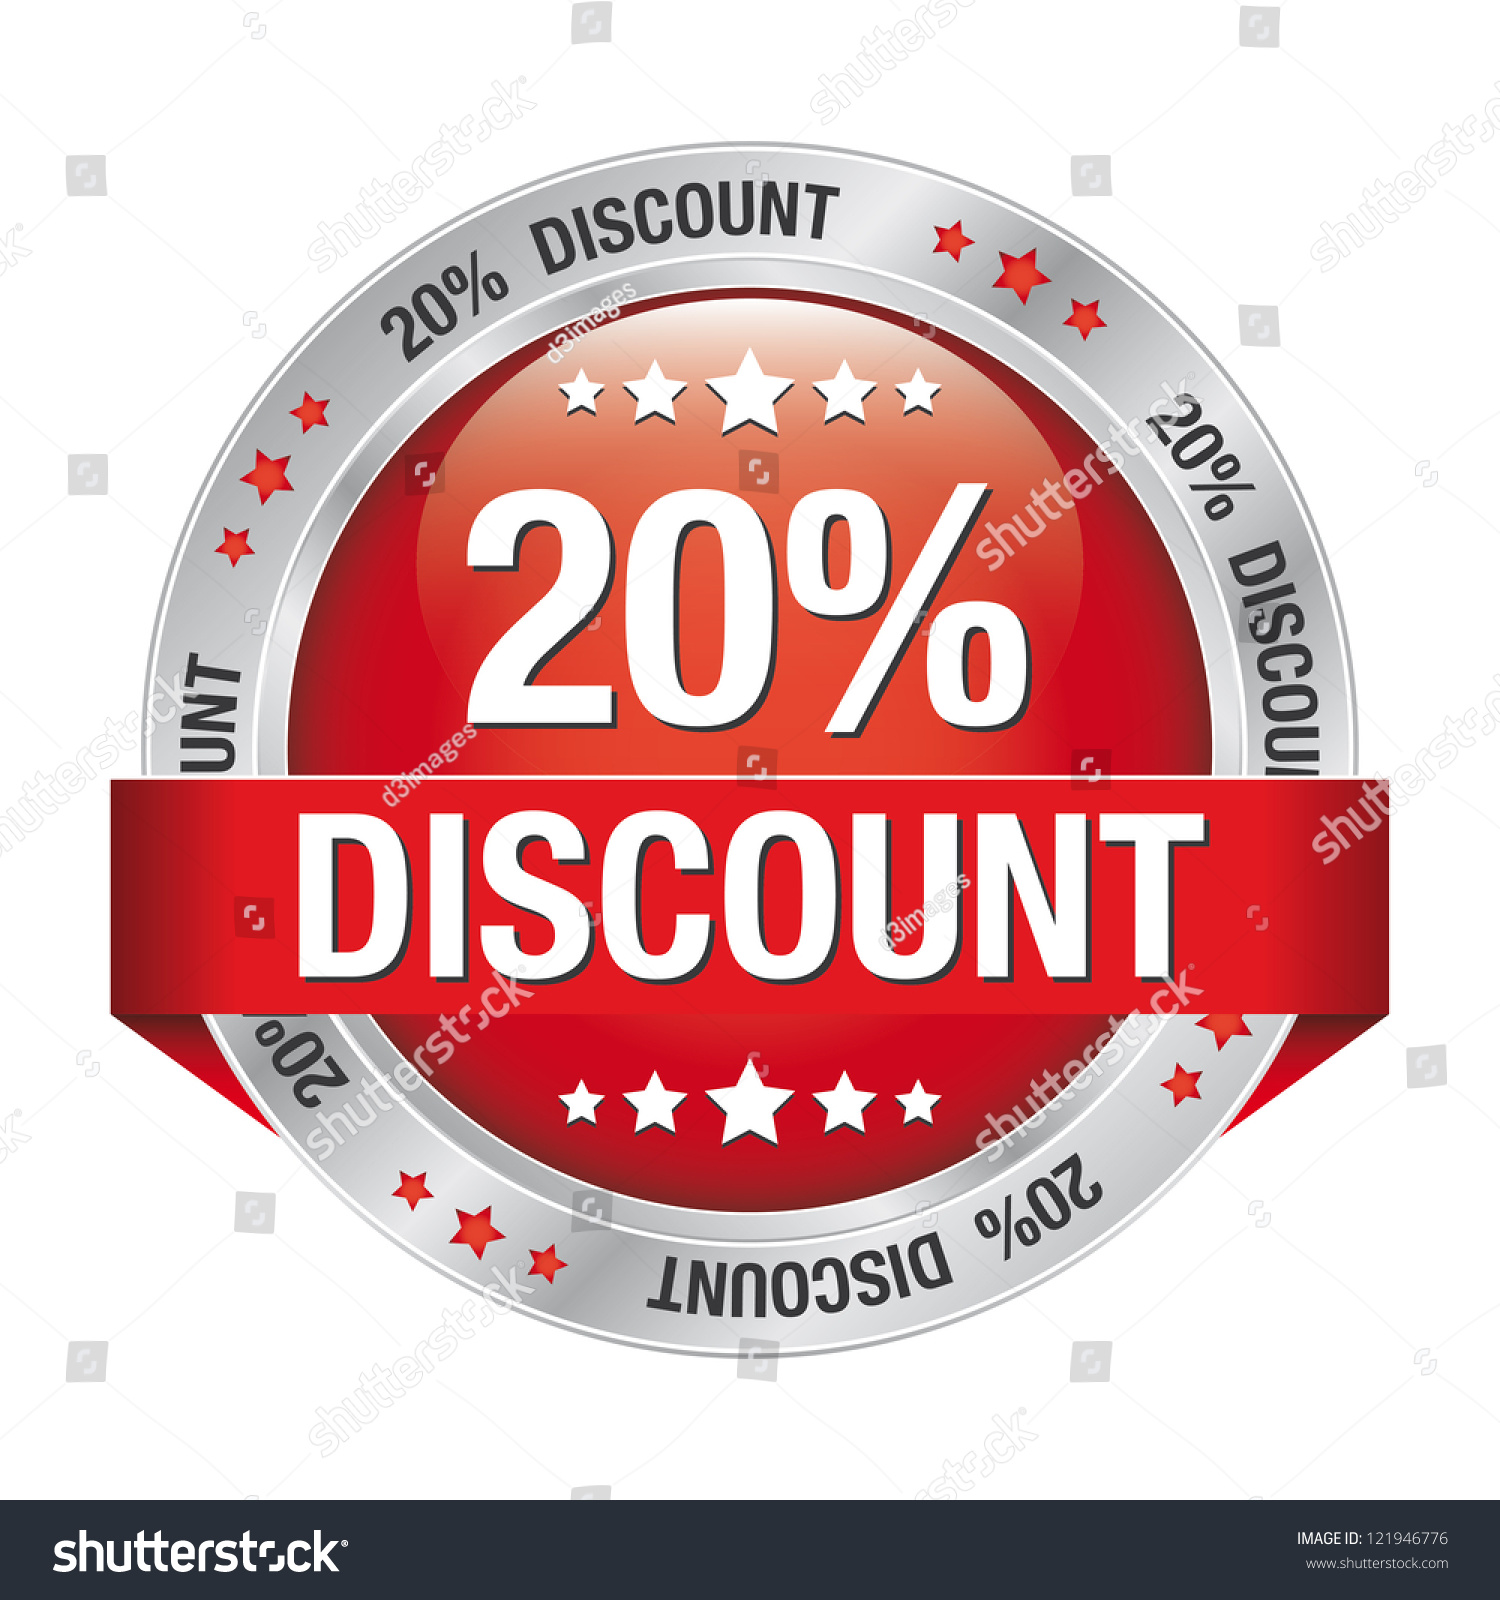 20 discount red silver button isolated stock vector for Cheap logo